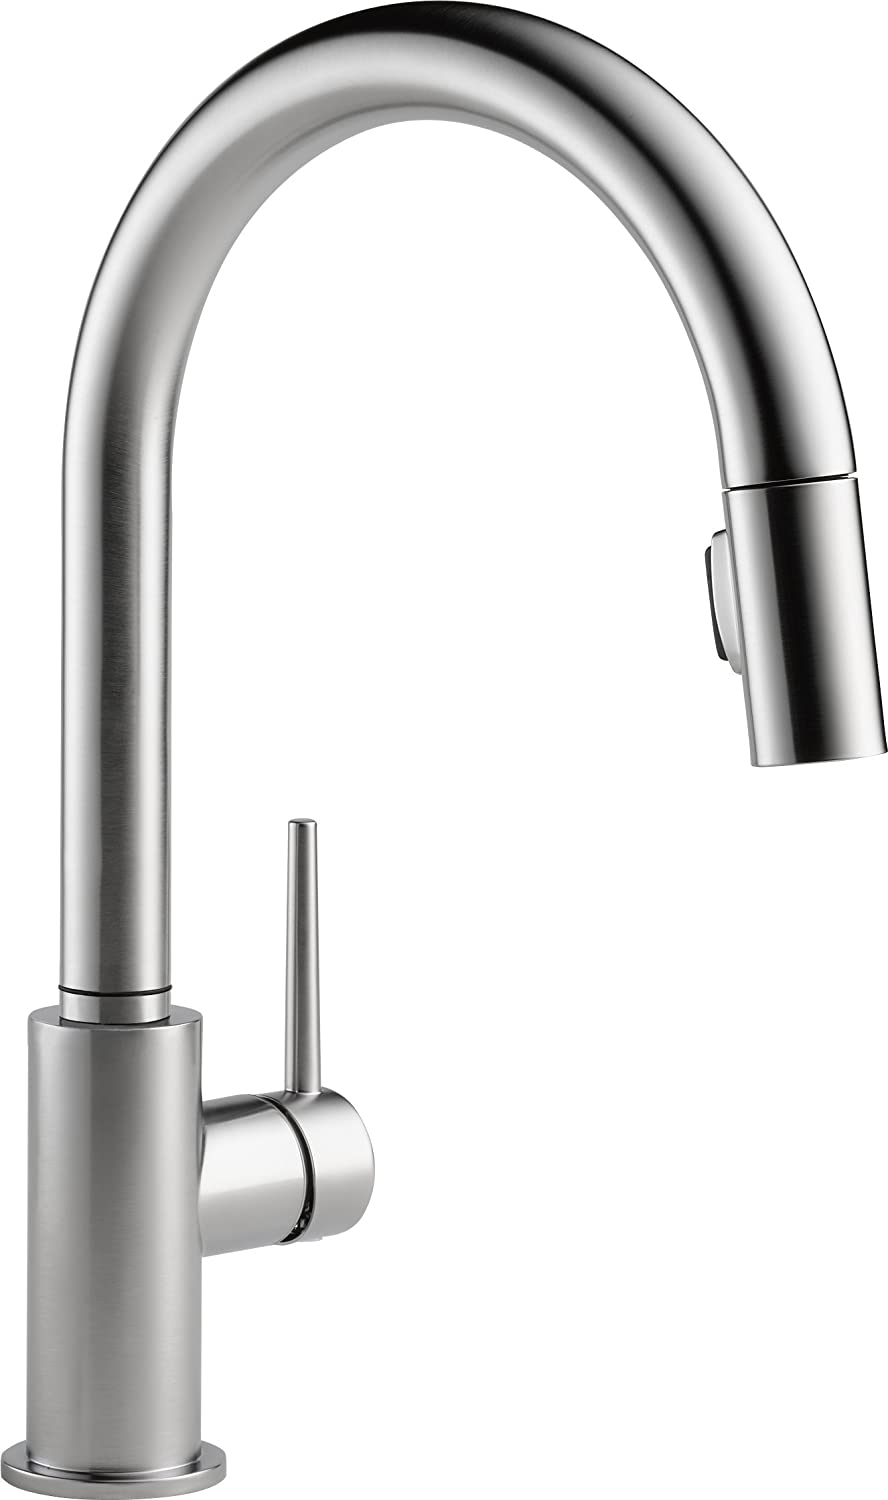 modern commercial stainless steel single lever pausebotton pull out sprayer kitchen faucet brushed nickel kitchen sink faucet walmart com